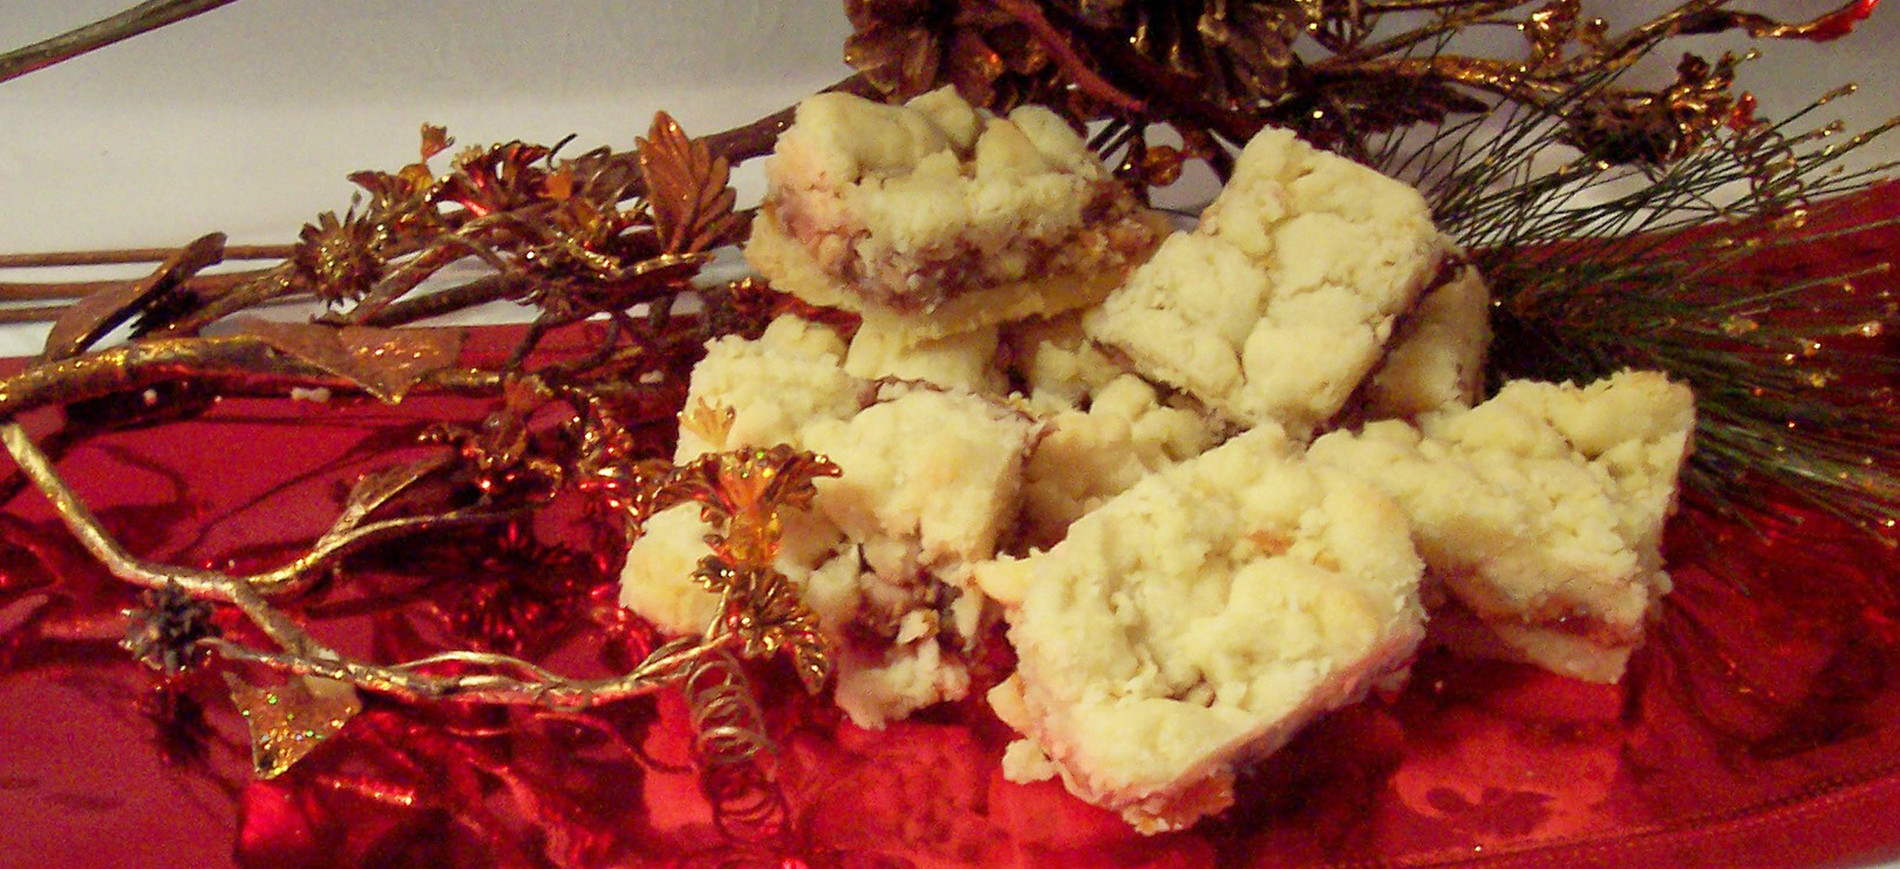 Raspberry Almond Cookie Bars on red ribbon with gold twigs & pinecone in background